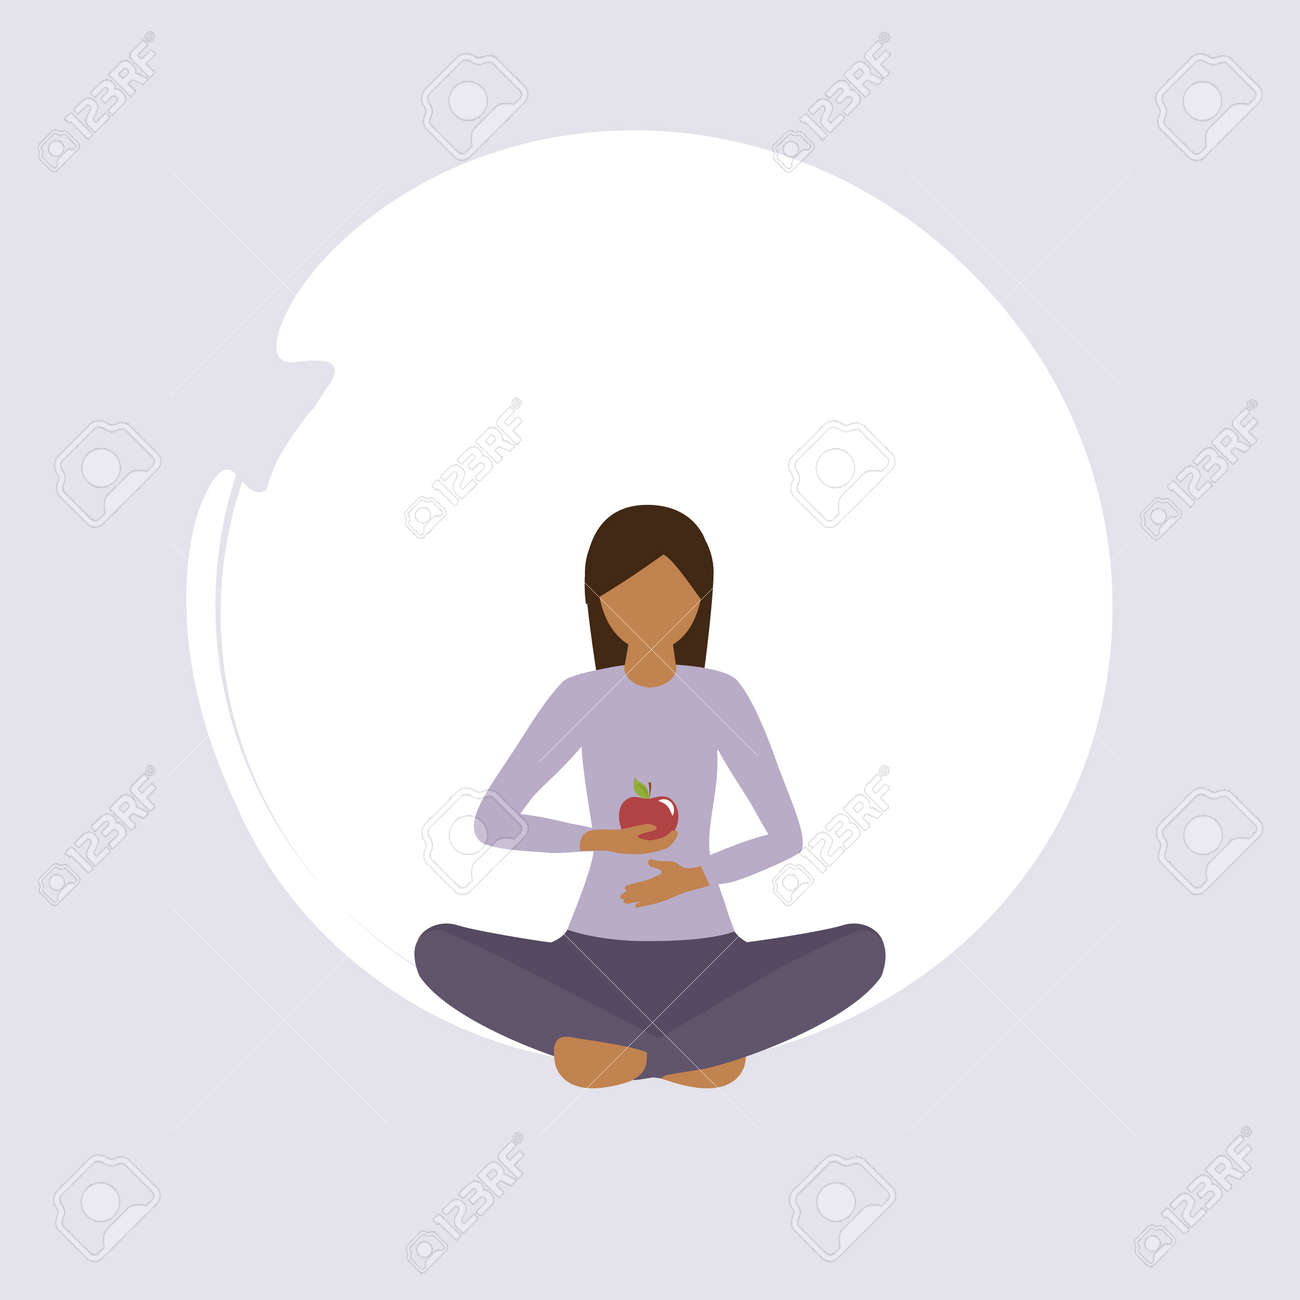 girl doing yoga exercise healthy lifestyle and food fitness design vector illustration - 168077369